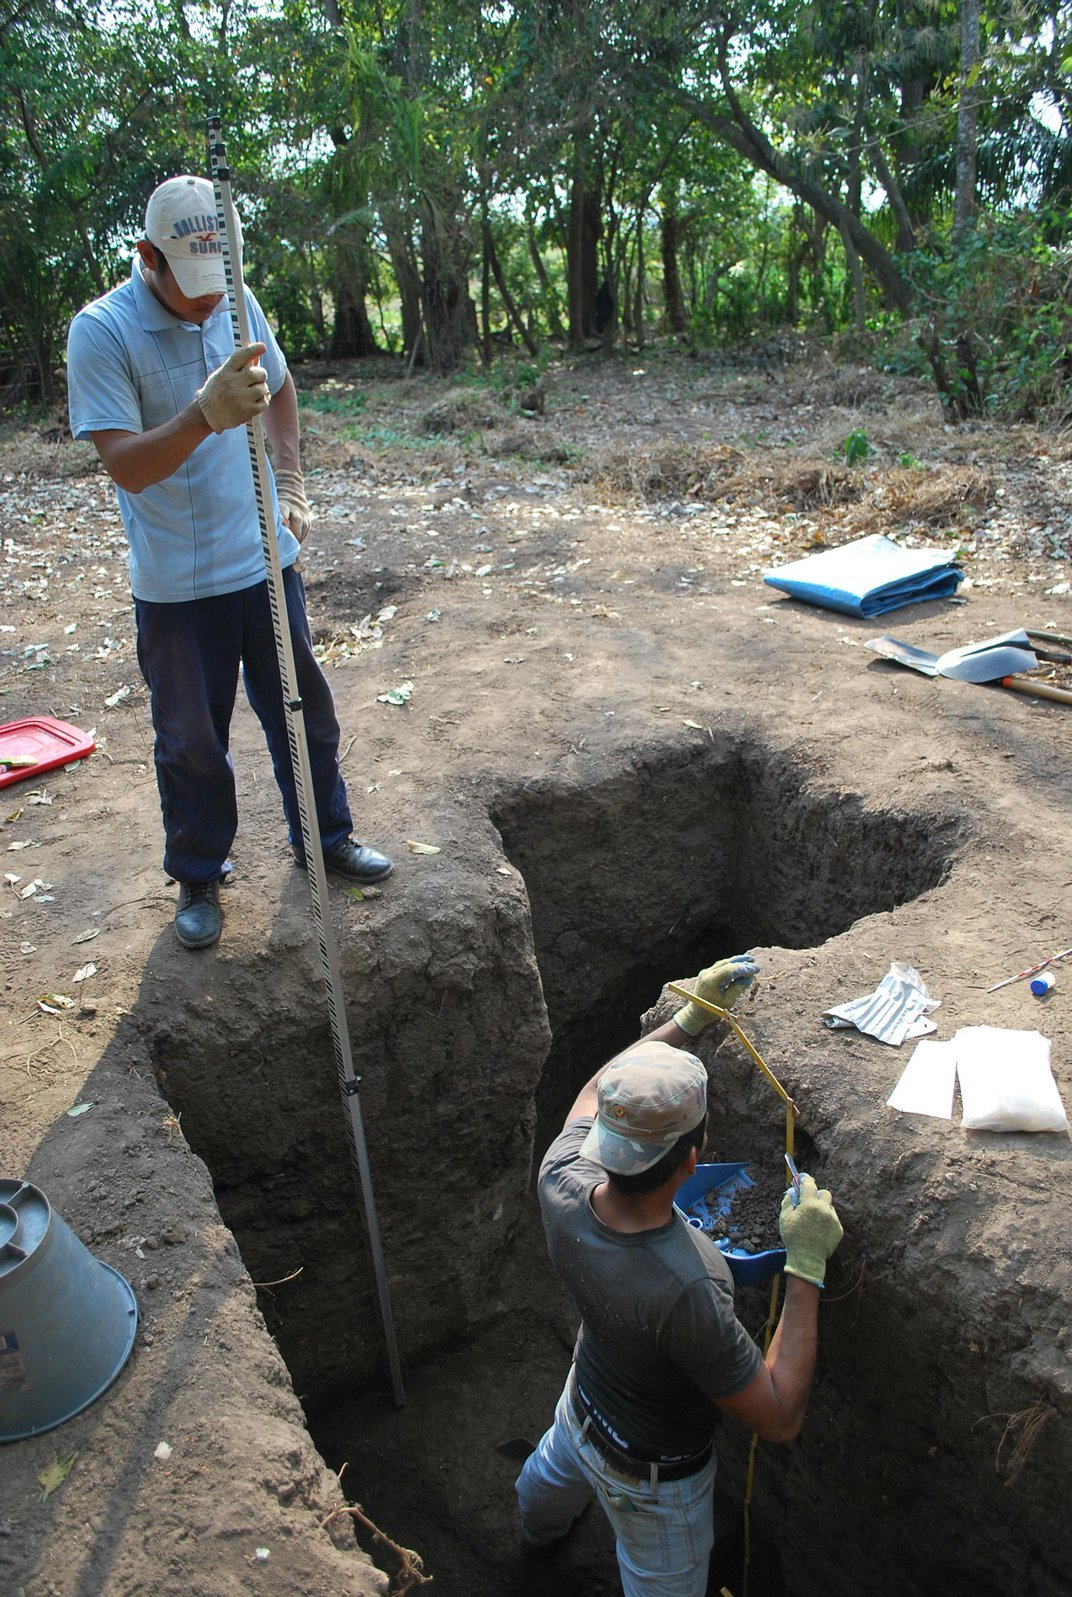 Archaeologists Discover Some of the Amazon's Oldest Human Burials